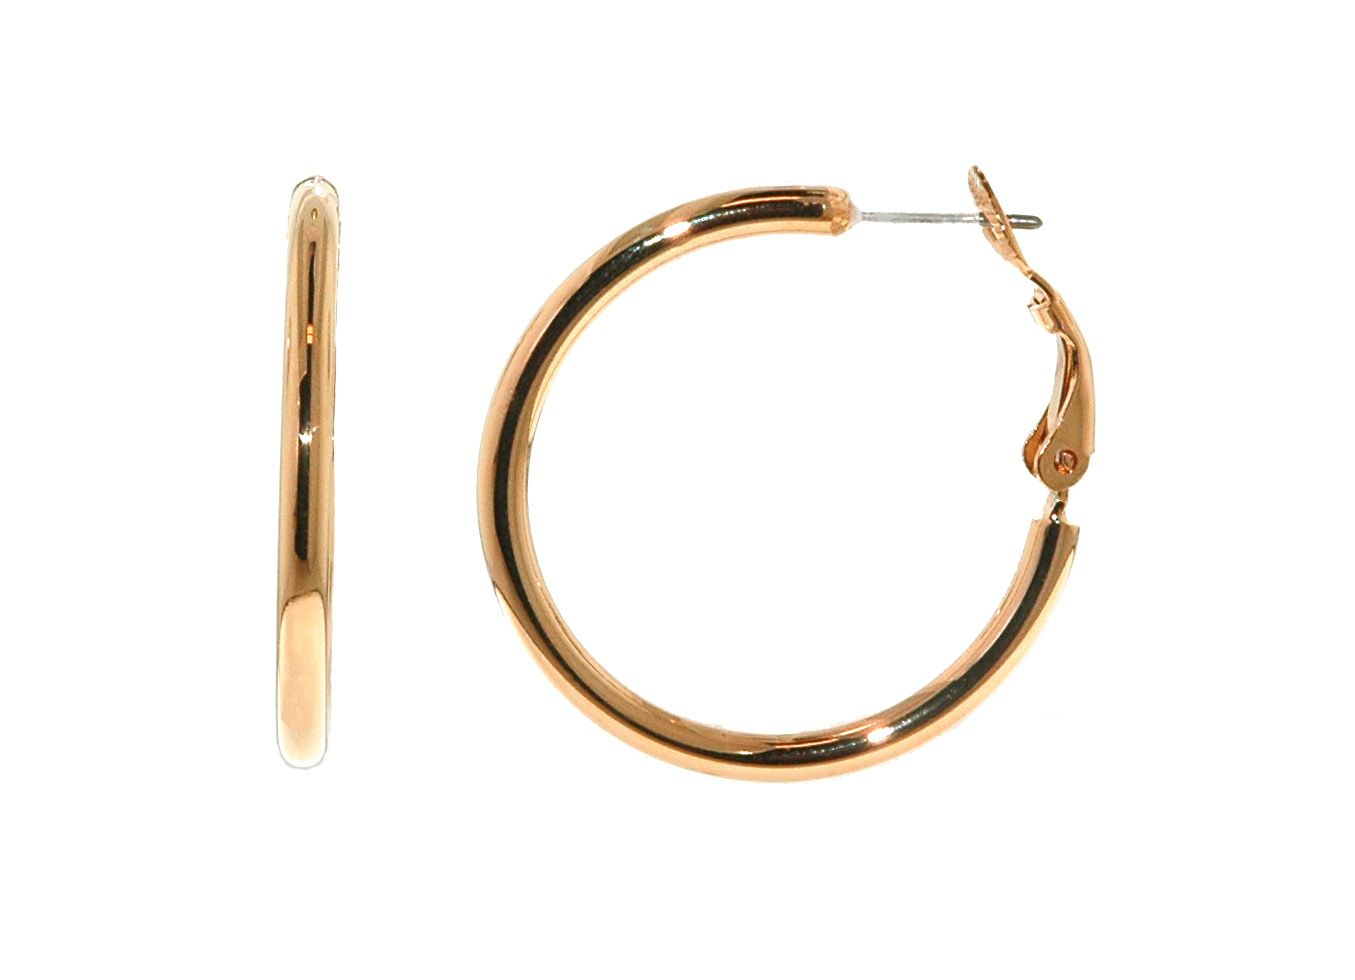 Rose gold hoop pierced earrings